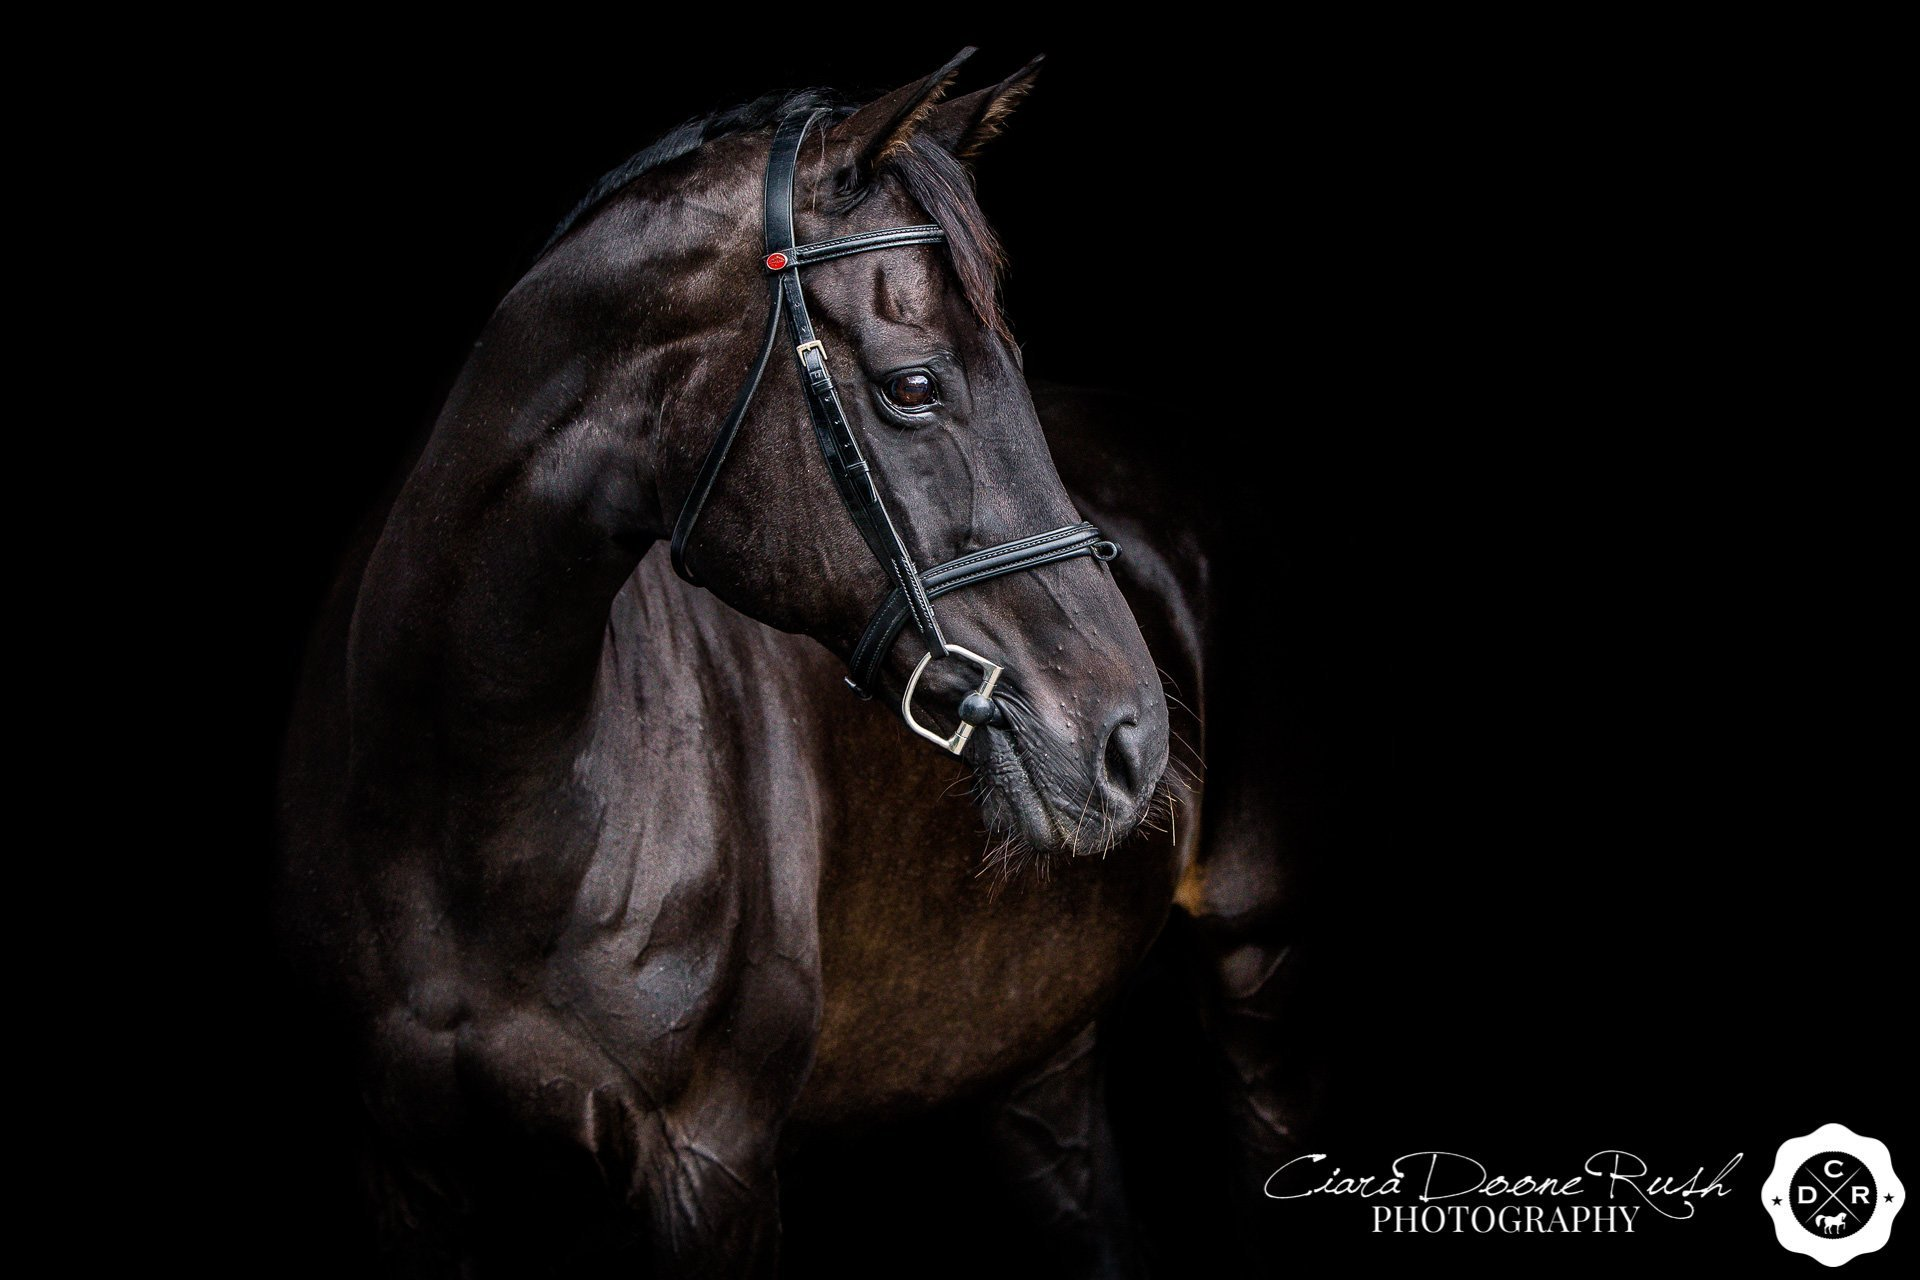 A black horse against a black background on a horse at liberty photo shoot